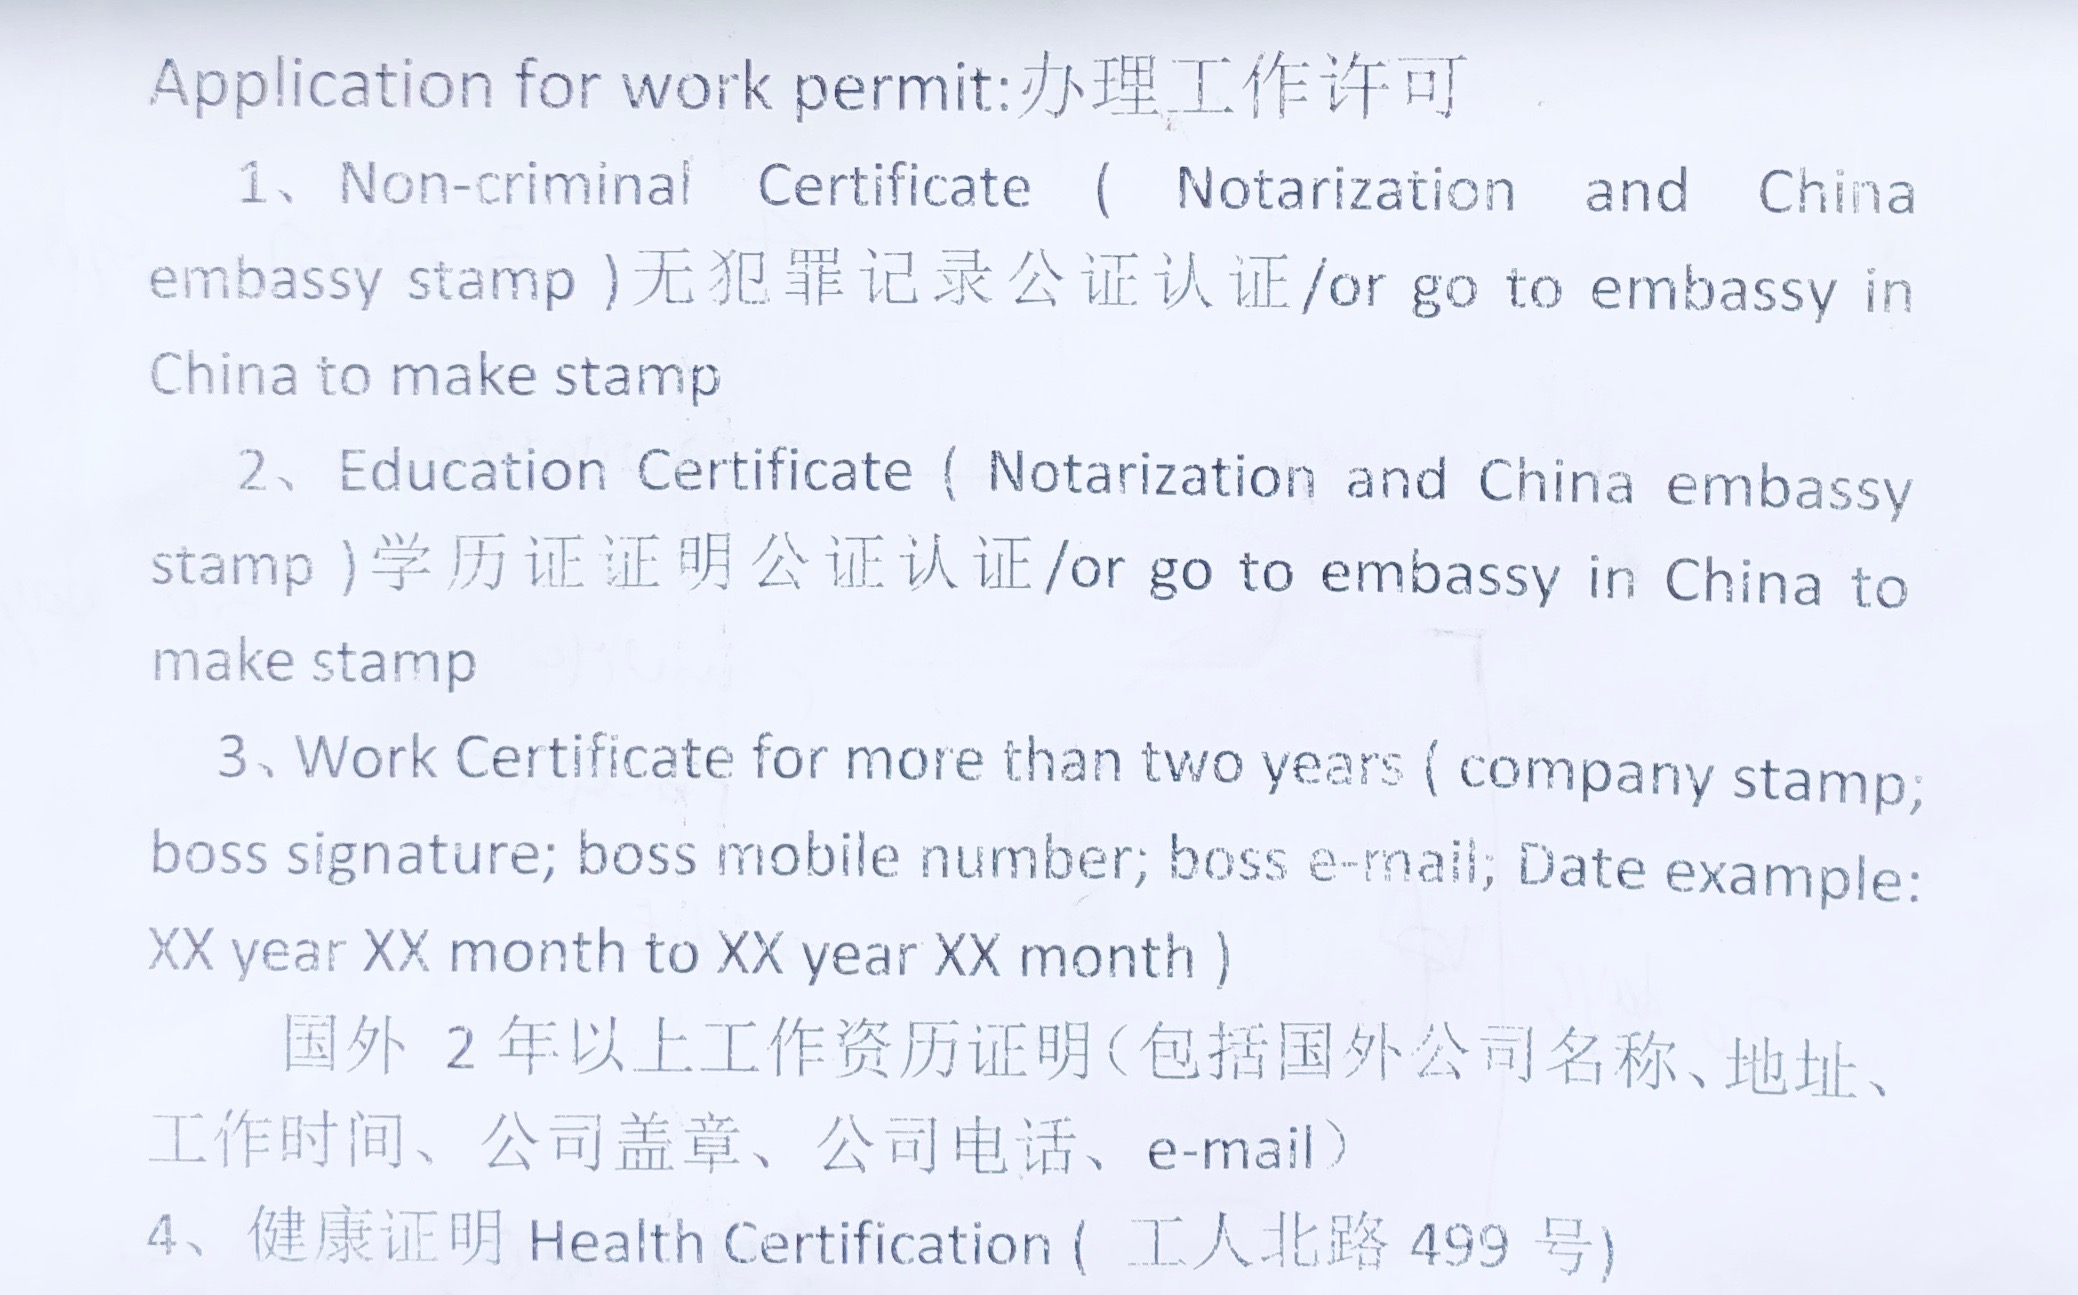 documents required for getting work permit in Yiwu China